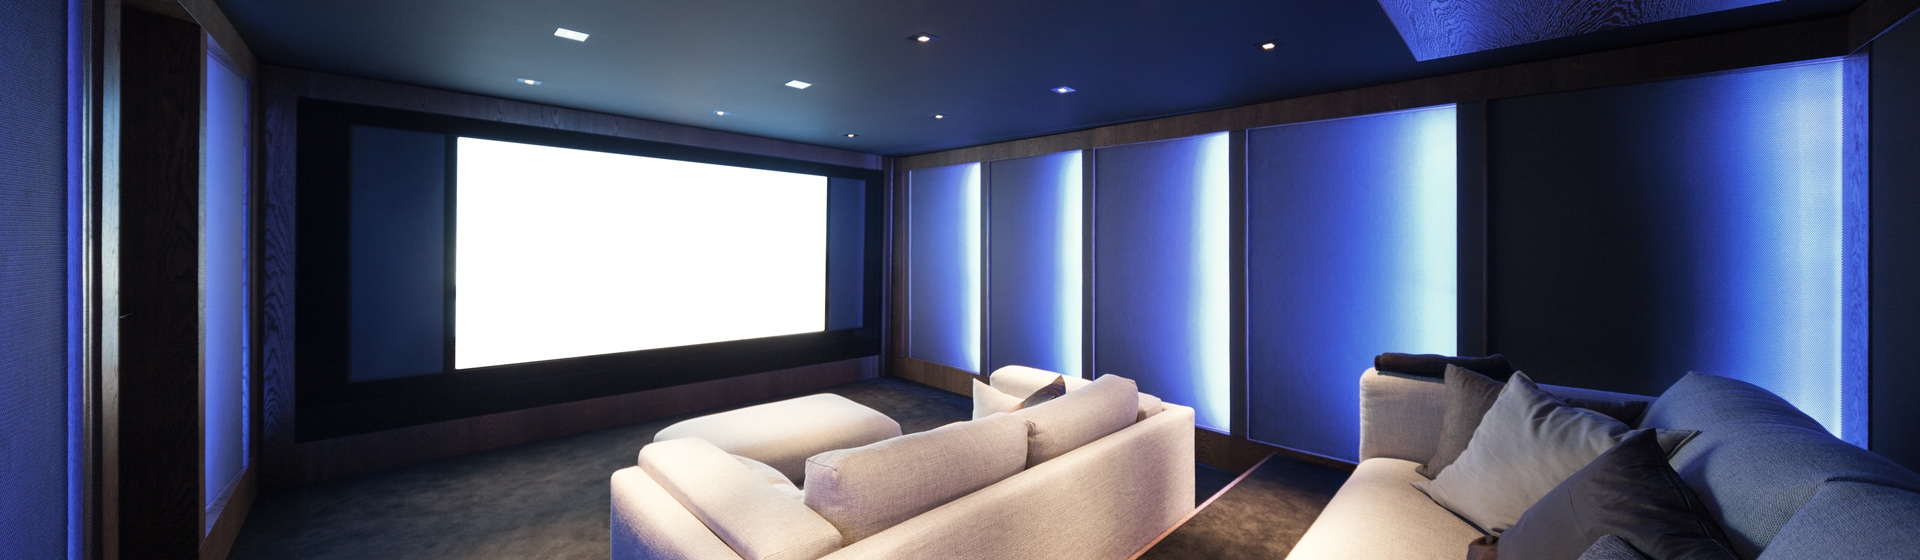 Home Theatre Installation | Tampa Bay | High Definition Audio Video, Inc.